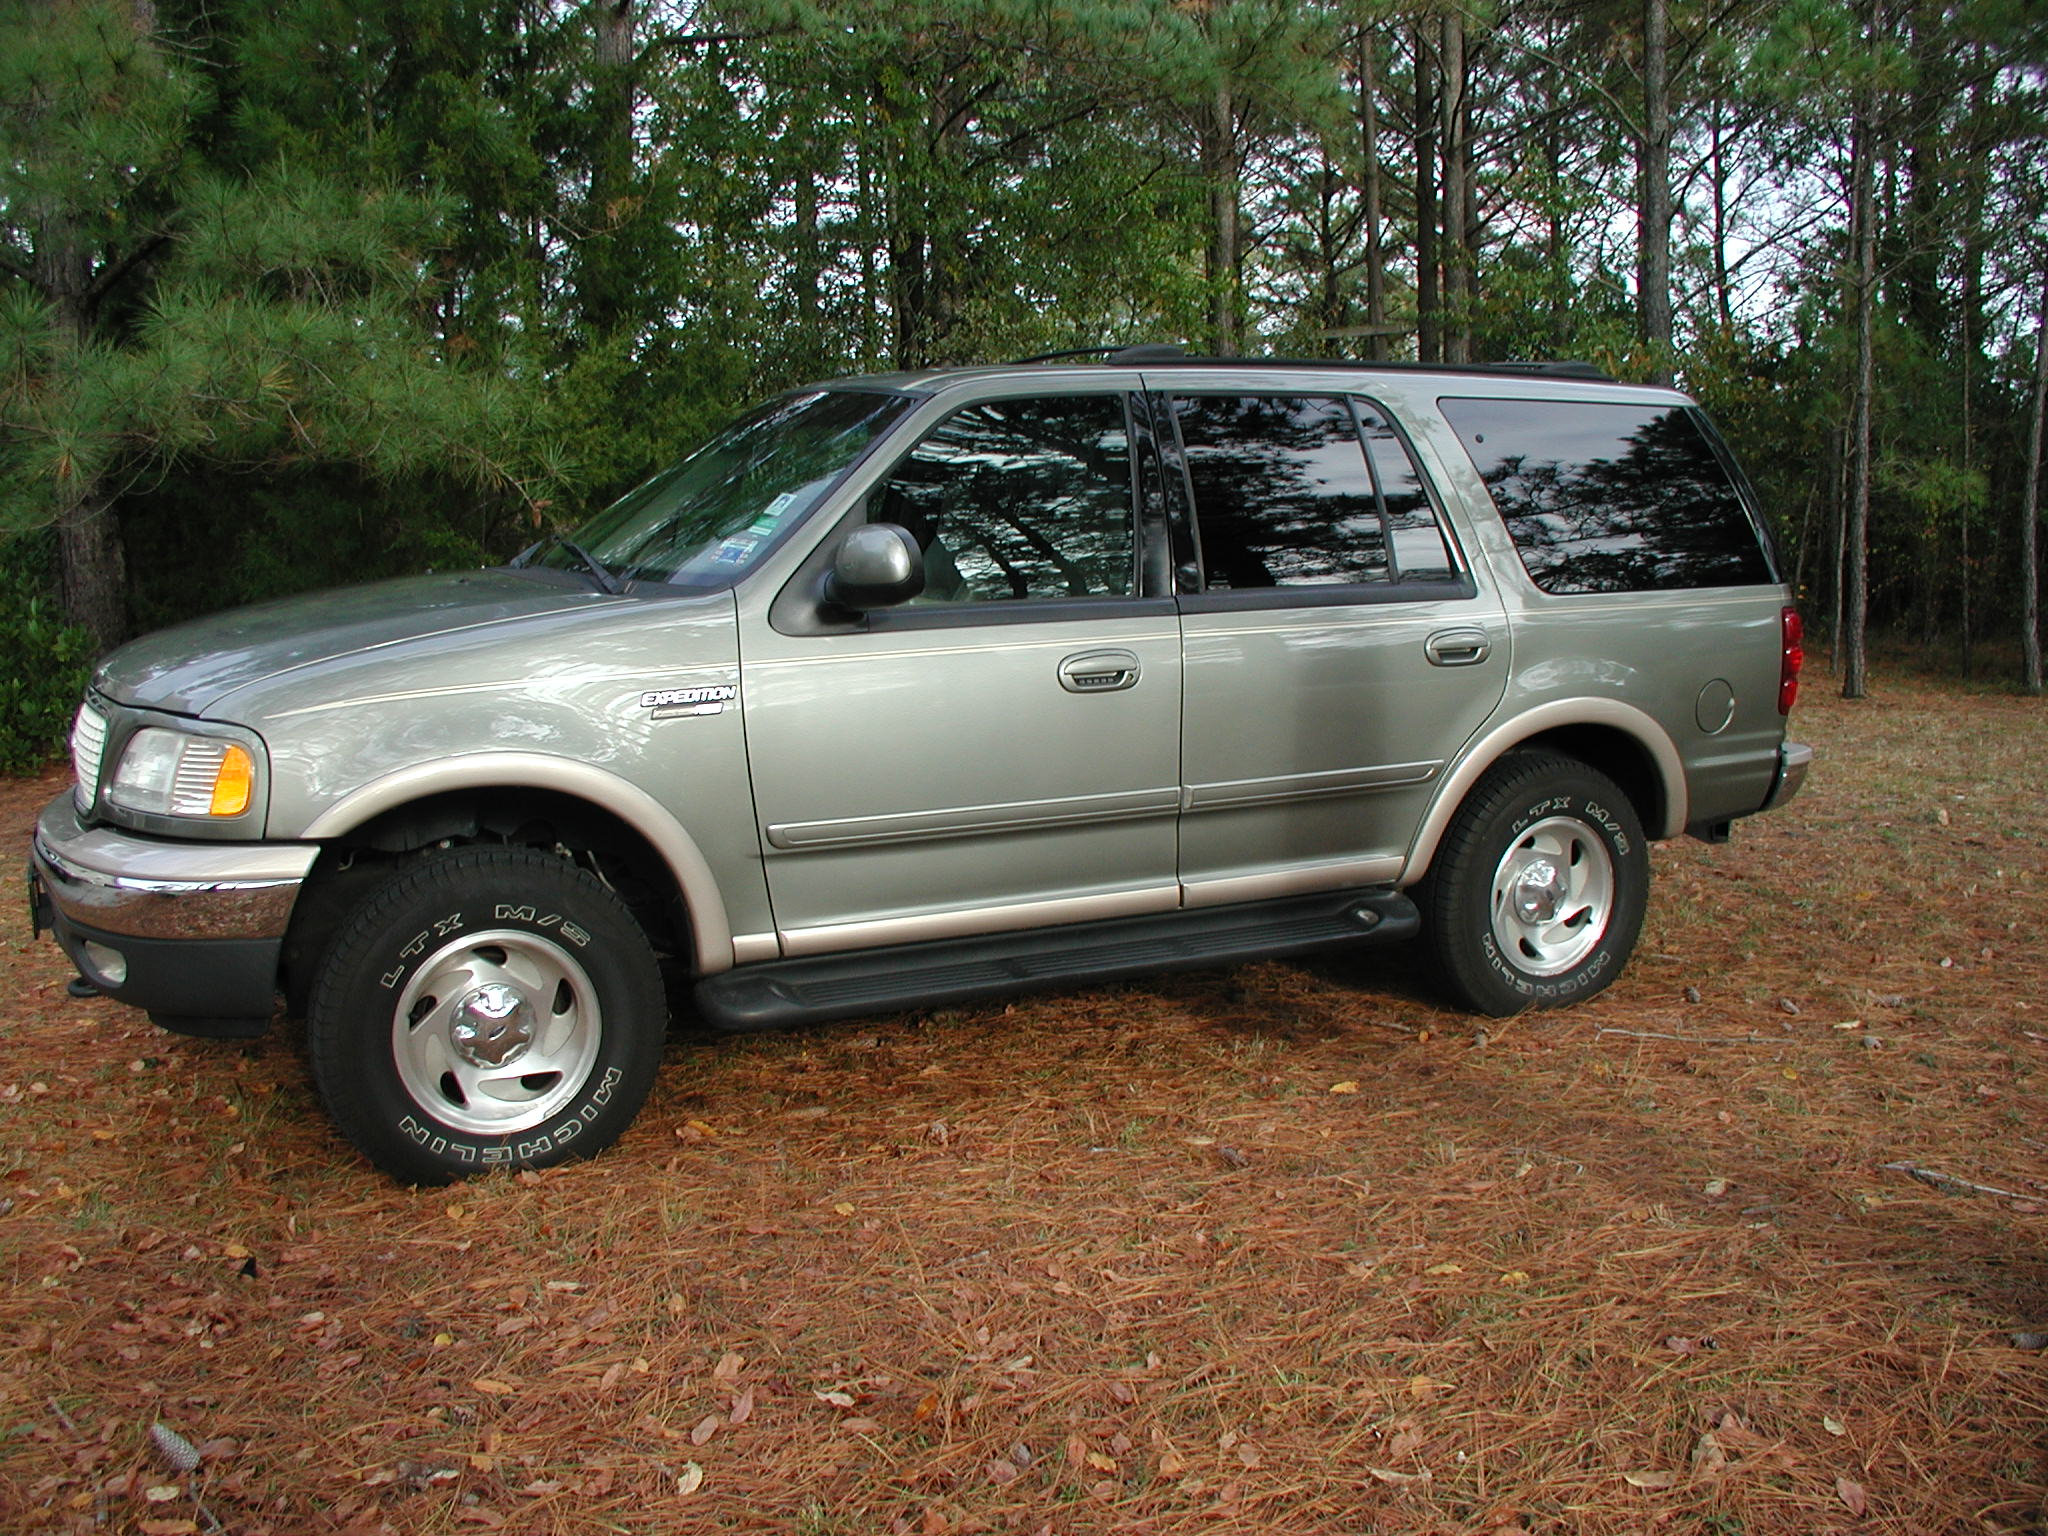 1999 ford expedition eddie bauer for sale 910 332 1751 www jphilips com